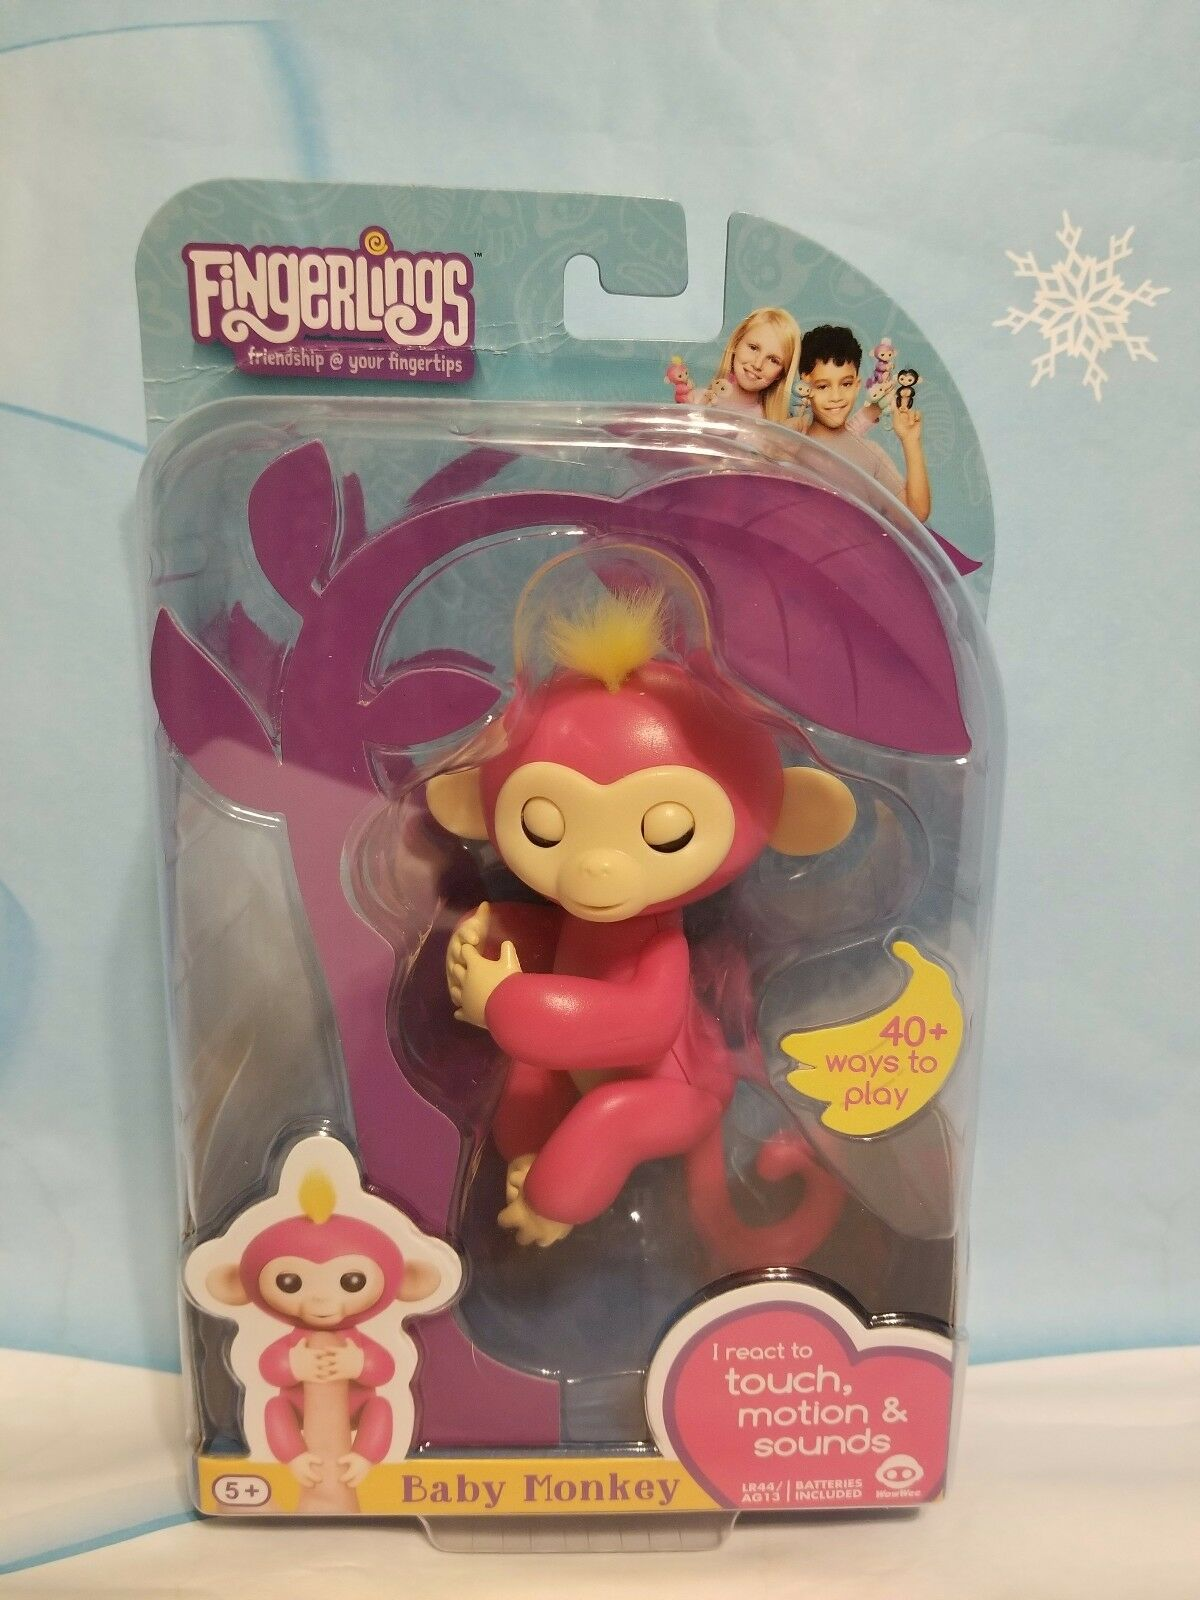 Neue authentische wowwee fingerlings interaktive baby - äffchen farbe Rosa namen bella